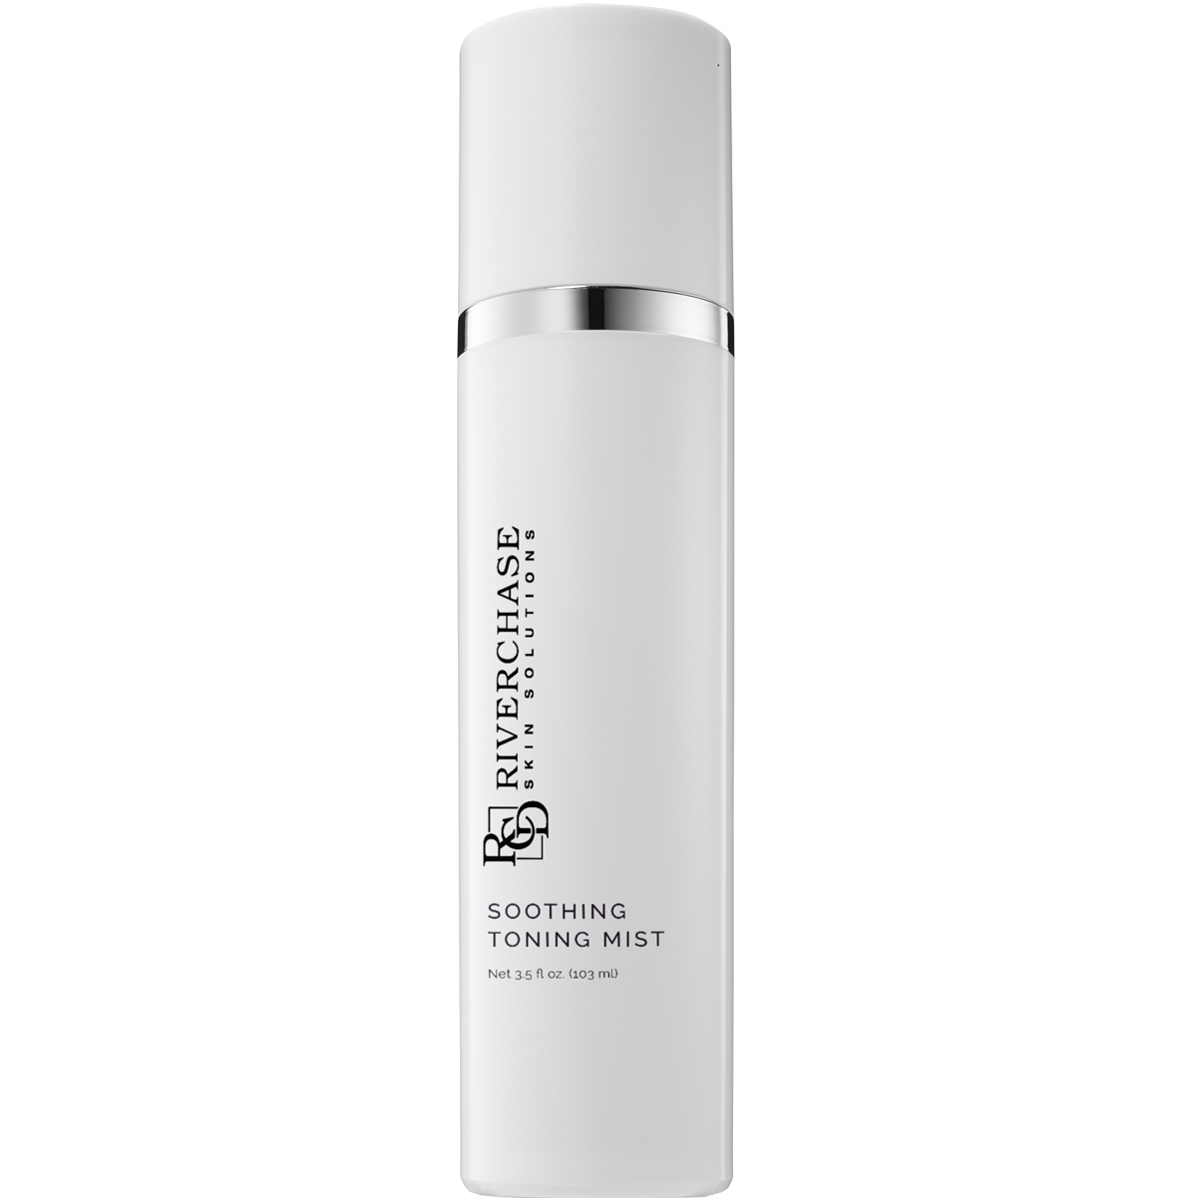 Soothing Toning Mist